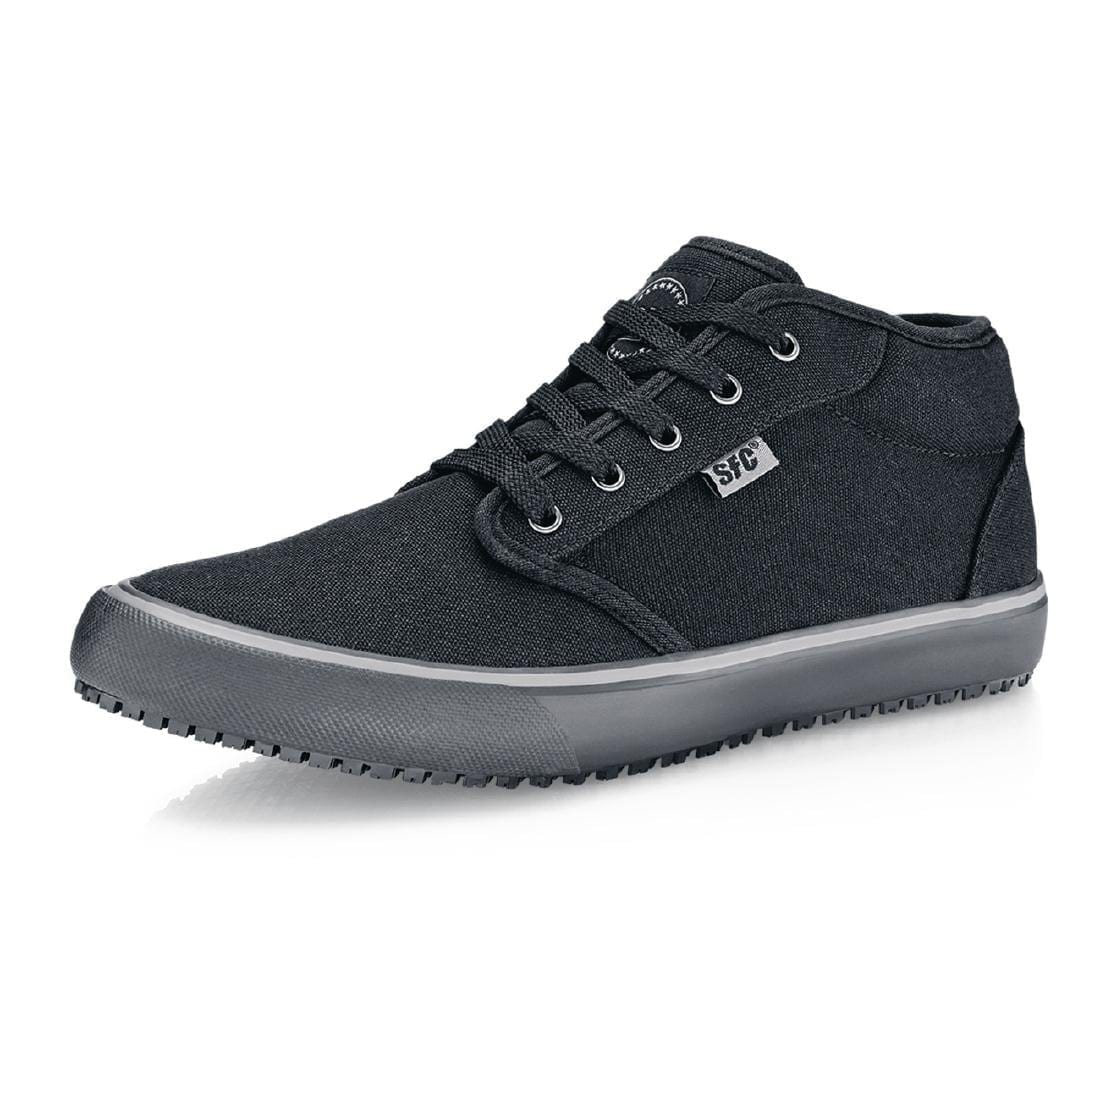 Shoes For Crews Coated Canvas Lace up Boot - Size 41-0